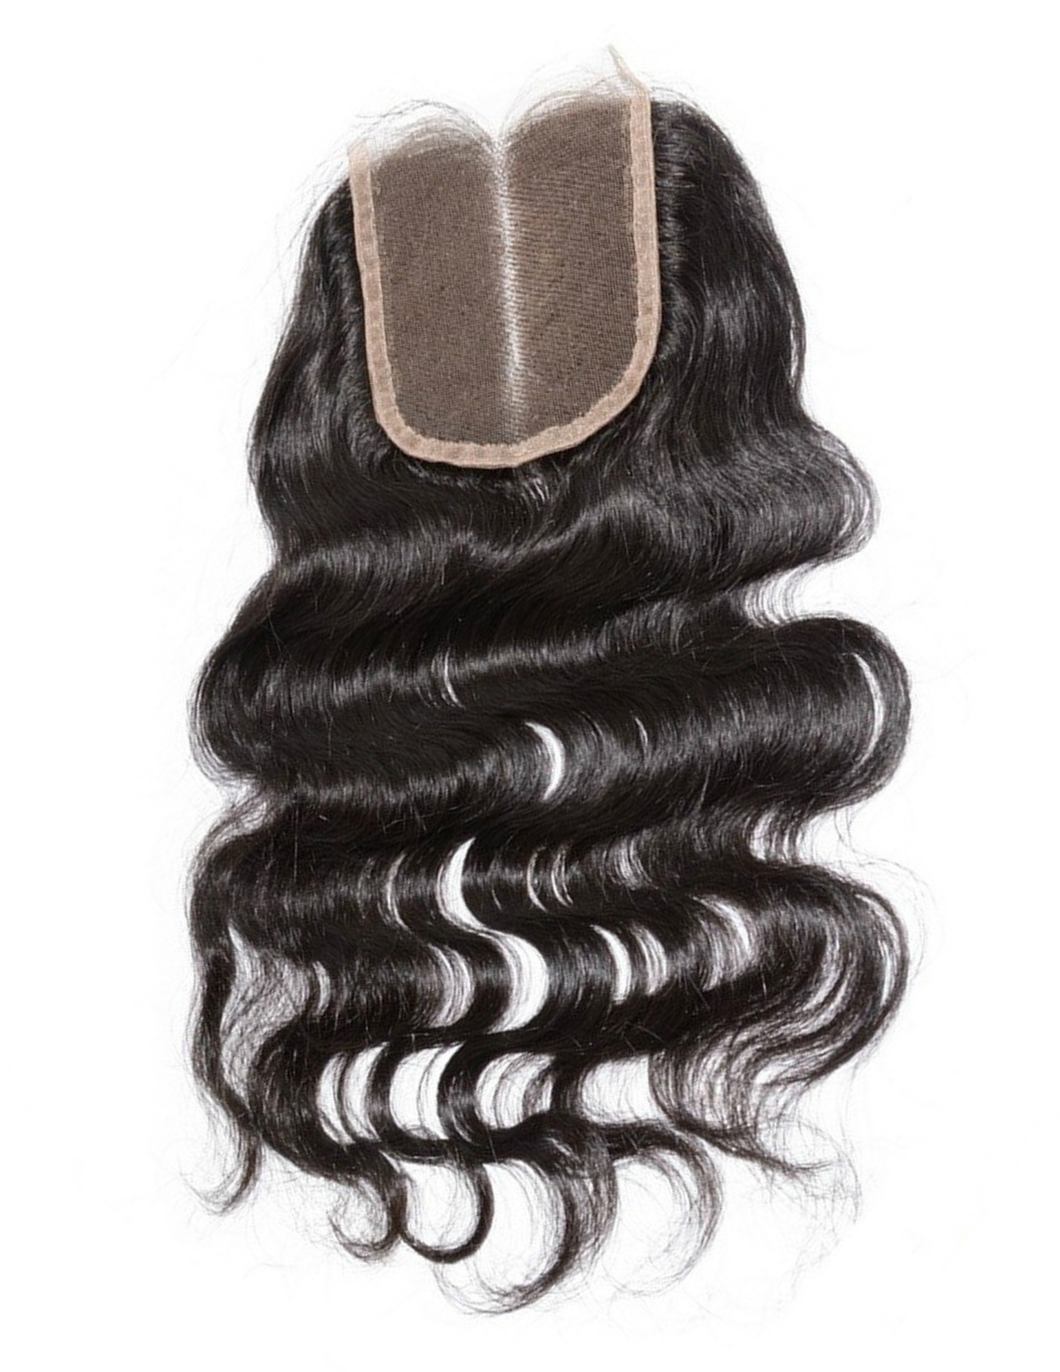 TNT LOOSE WAVE CLOSURE